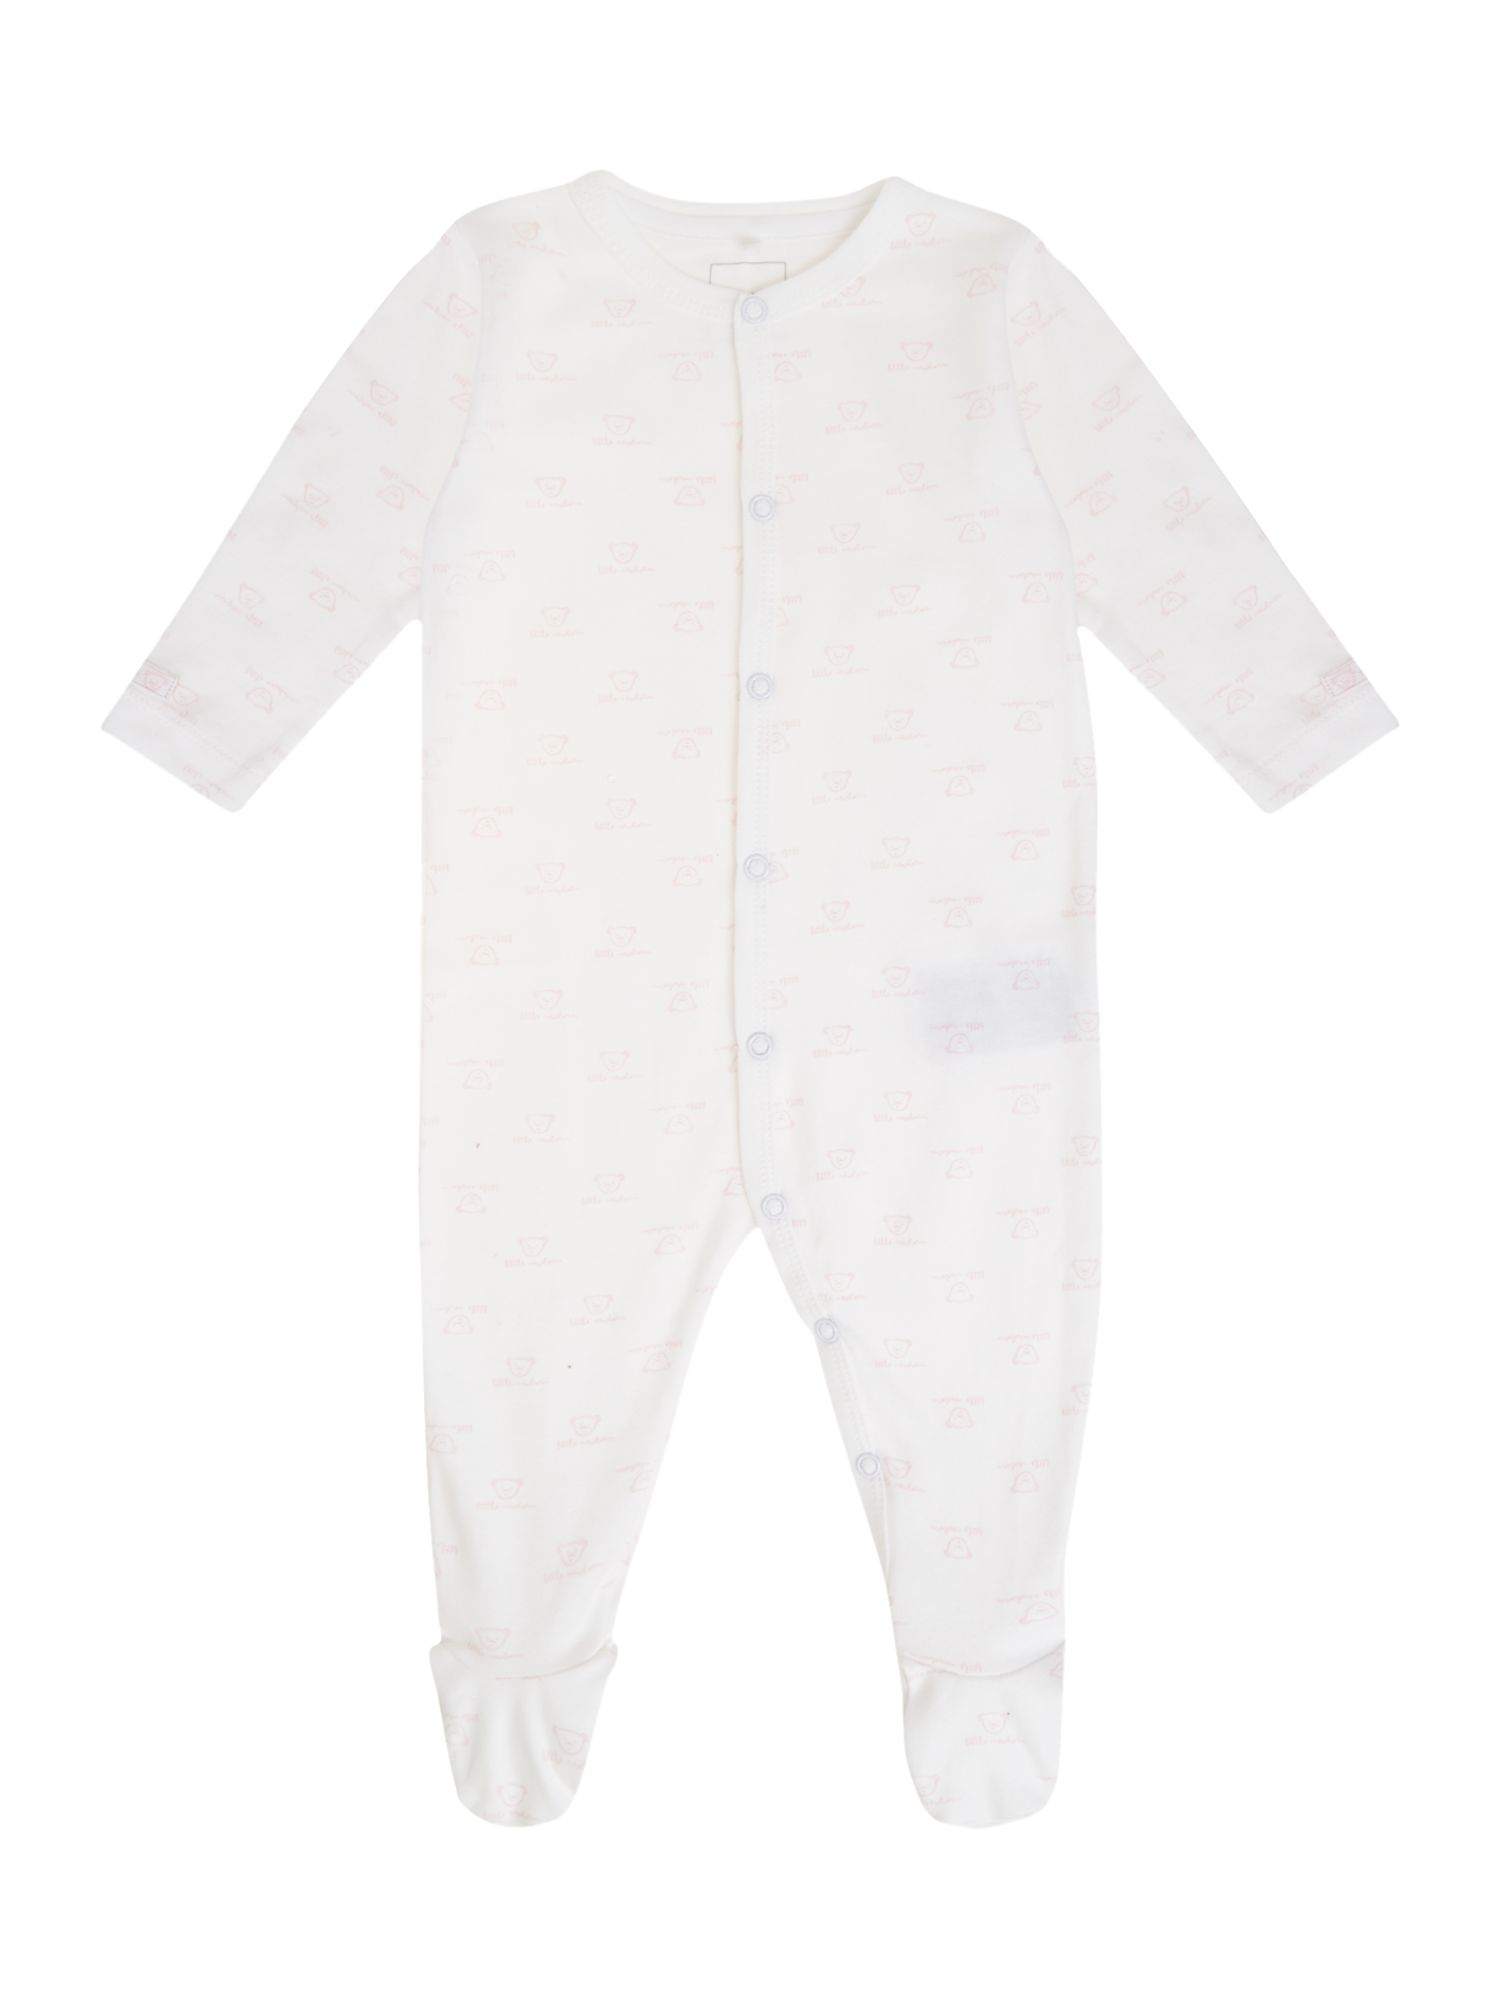 Babys all-over-print teddy sleepsuit